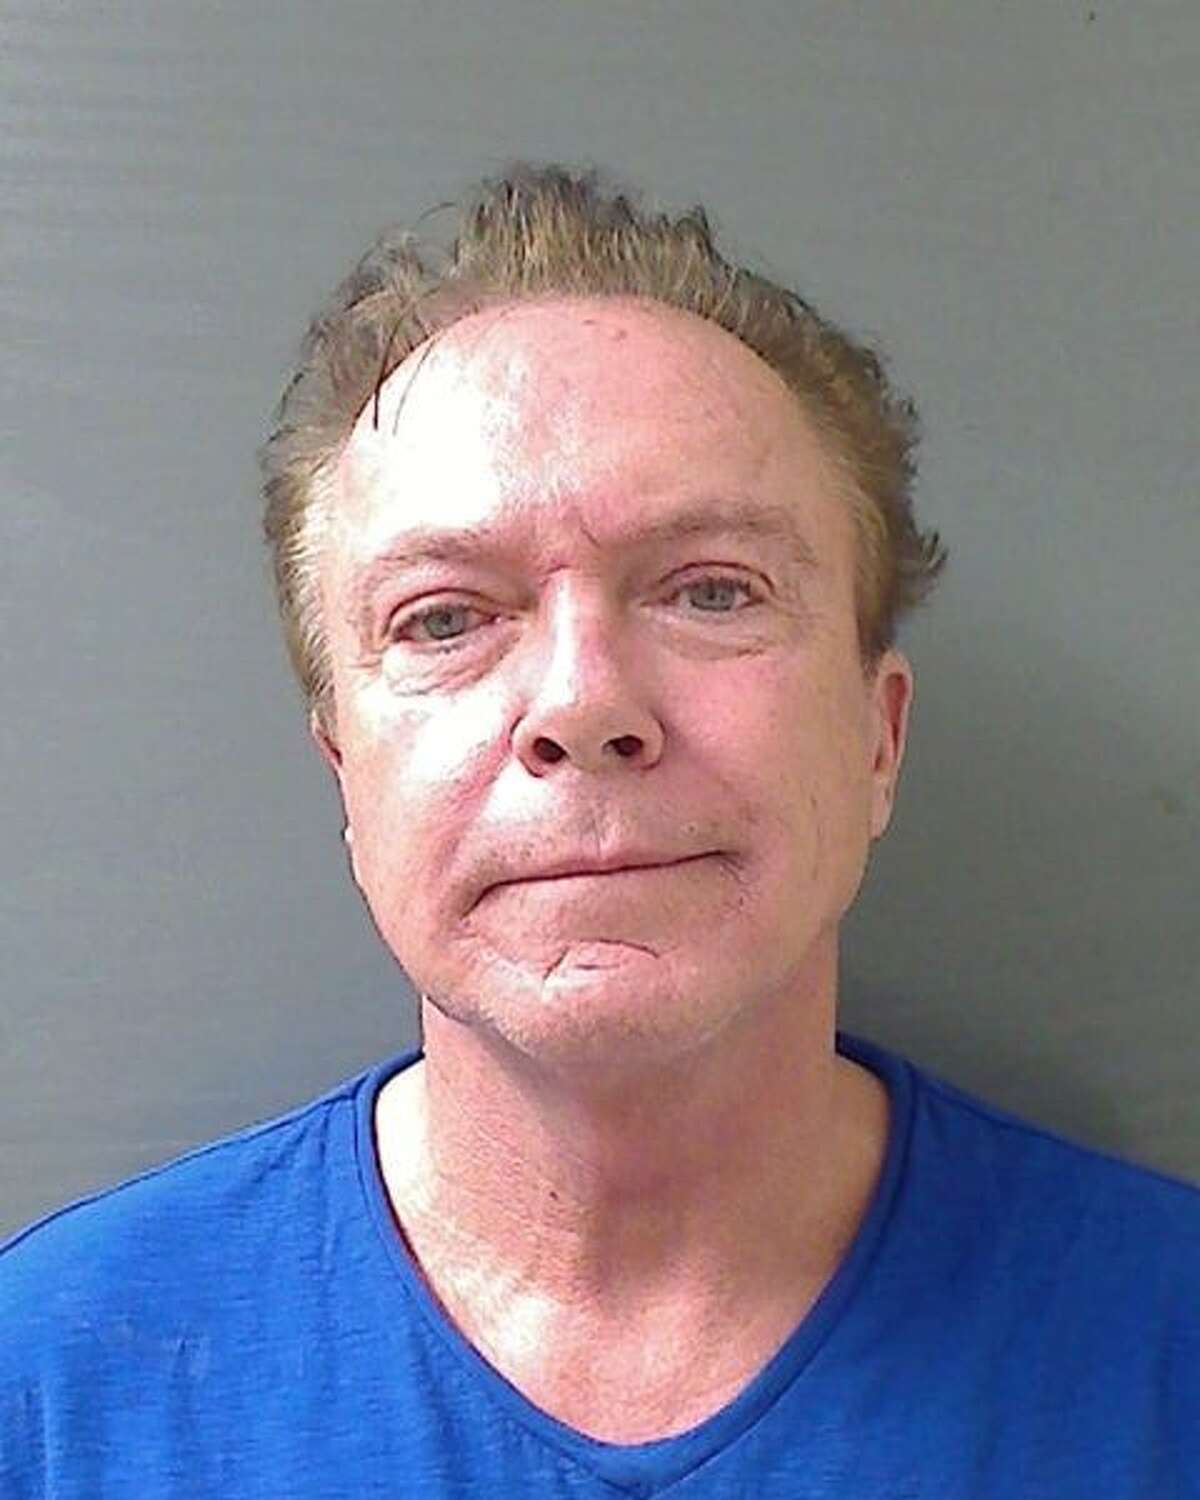 The mugshot from David Cassidy's arrest in Schodack on Tuesday. (Schodack Police Department)